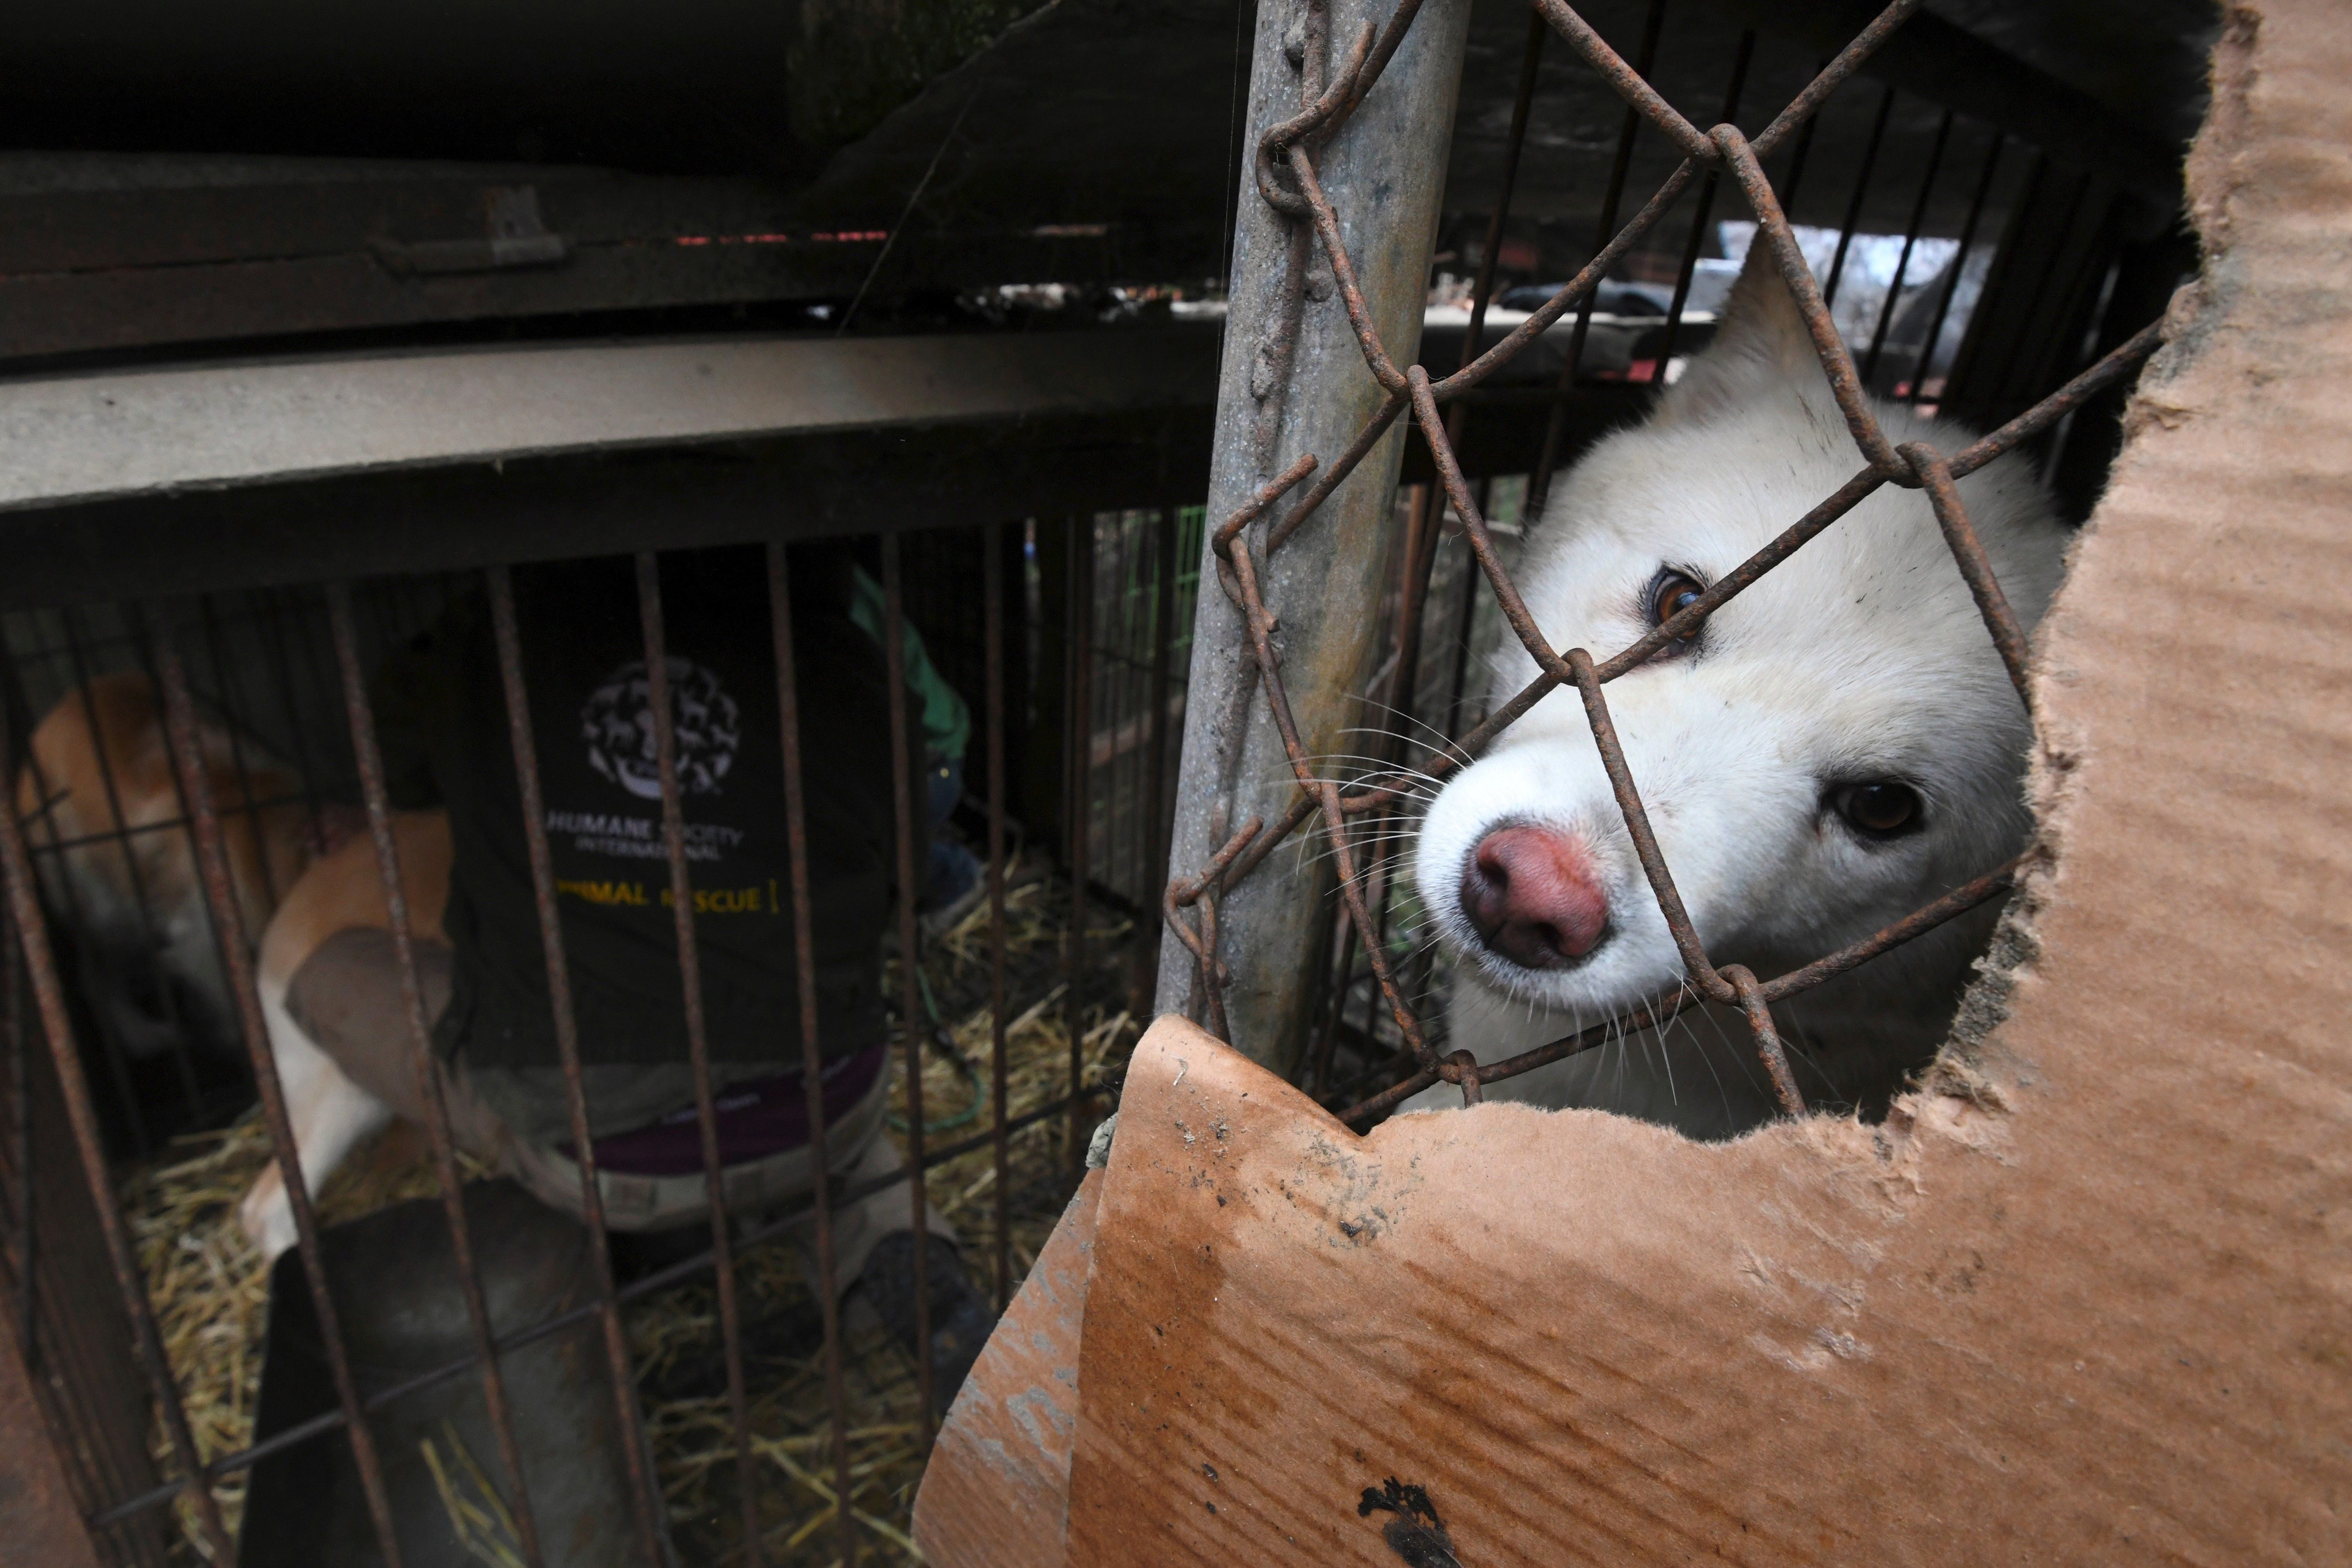 In this picture taken on November 28, 2017, a dog looks out from a cage at a dog farm during a rescue event, involving the closure of the farm organised by the Humane Society International (HSI) in Namyangju on the outskirts of Seoul. The tradition of consuming dog meat has declined as the nation increasingly embraces the idea of dogs as pets instead of livestock, with eating them now something of a taboo among young South Koreans. / AFP PHOTO / JUNG Yeon-Je / TO GO WITH SKorea-agriculture-food-dog, FEATURE by Jung Ha-Won         (Photo credit should read JUNG YEON-JE/AFP/Getty Images)